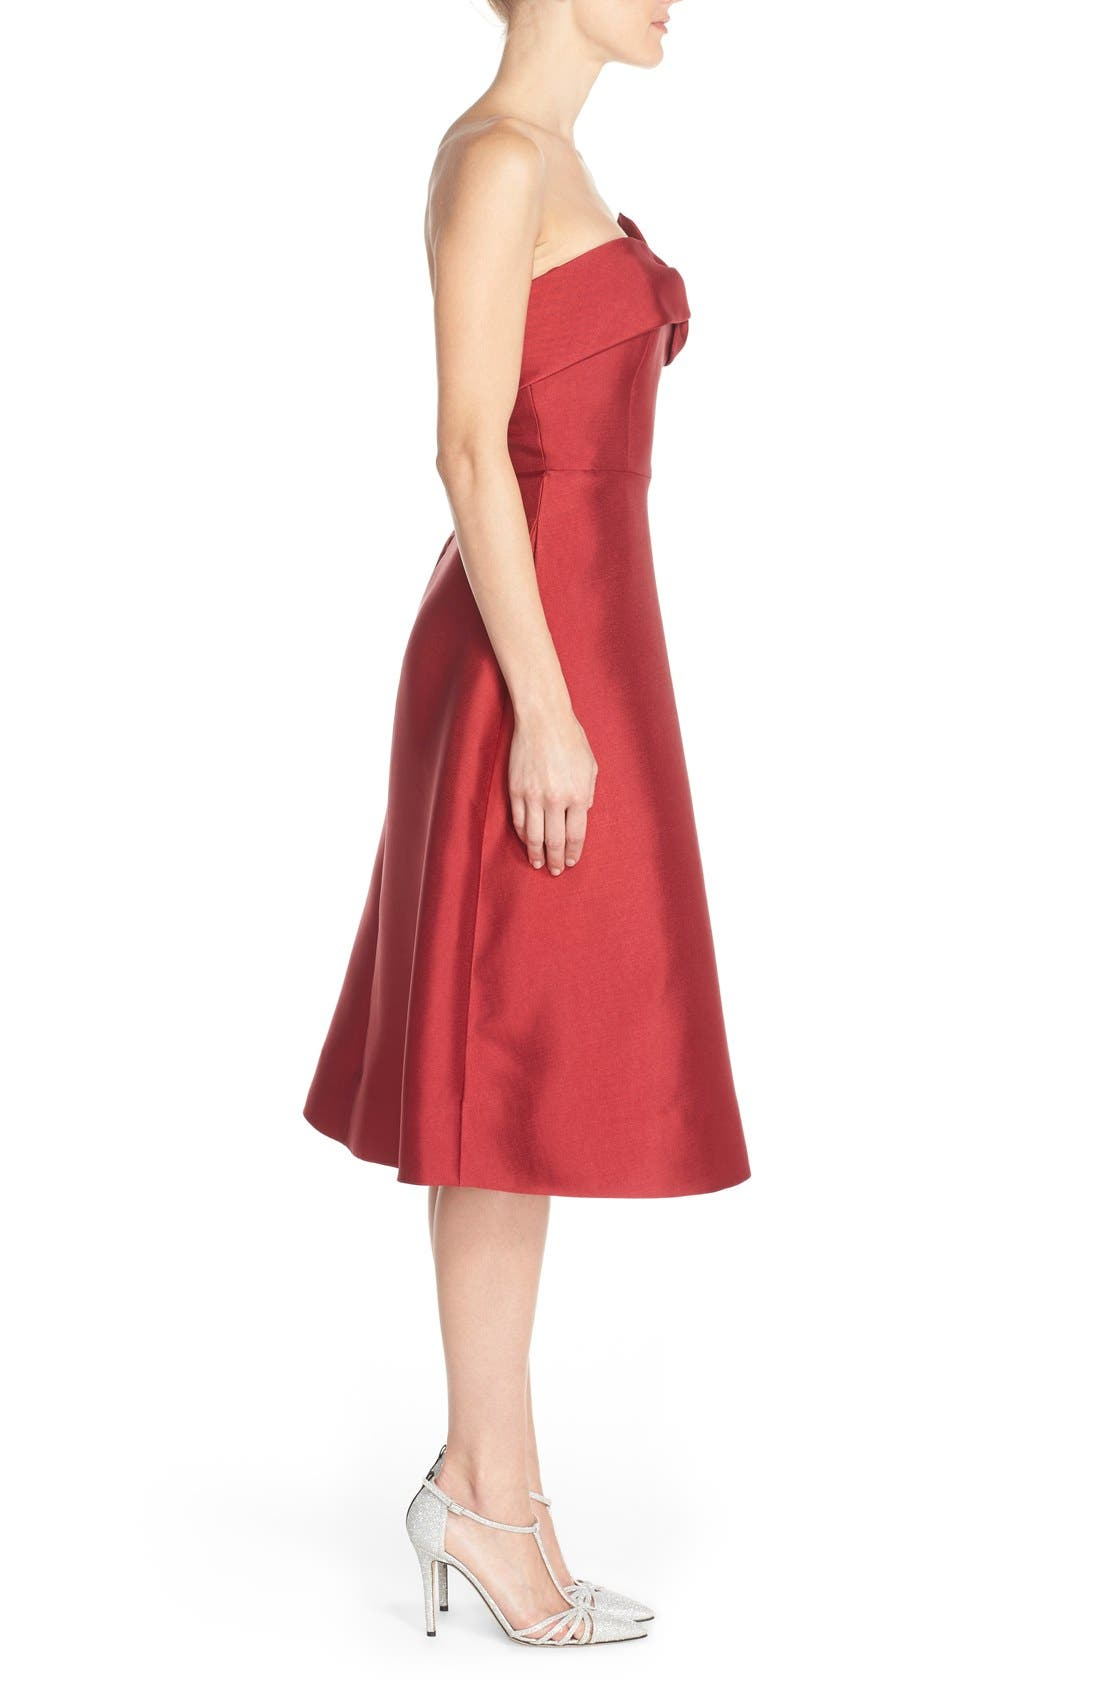 Alternate Image 3  - ERIN erin fetherston 'Katie' Bow Neck Twill Fit & Flare Dress